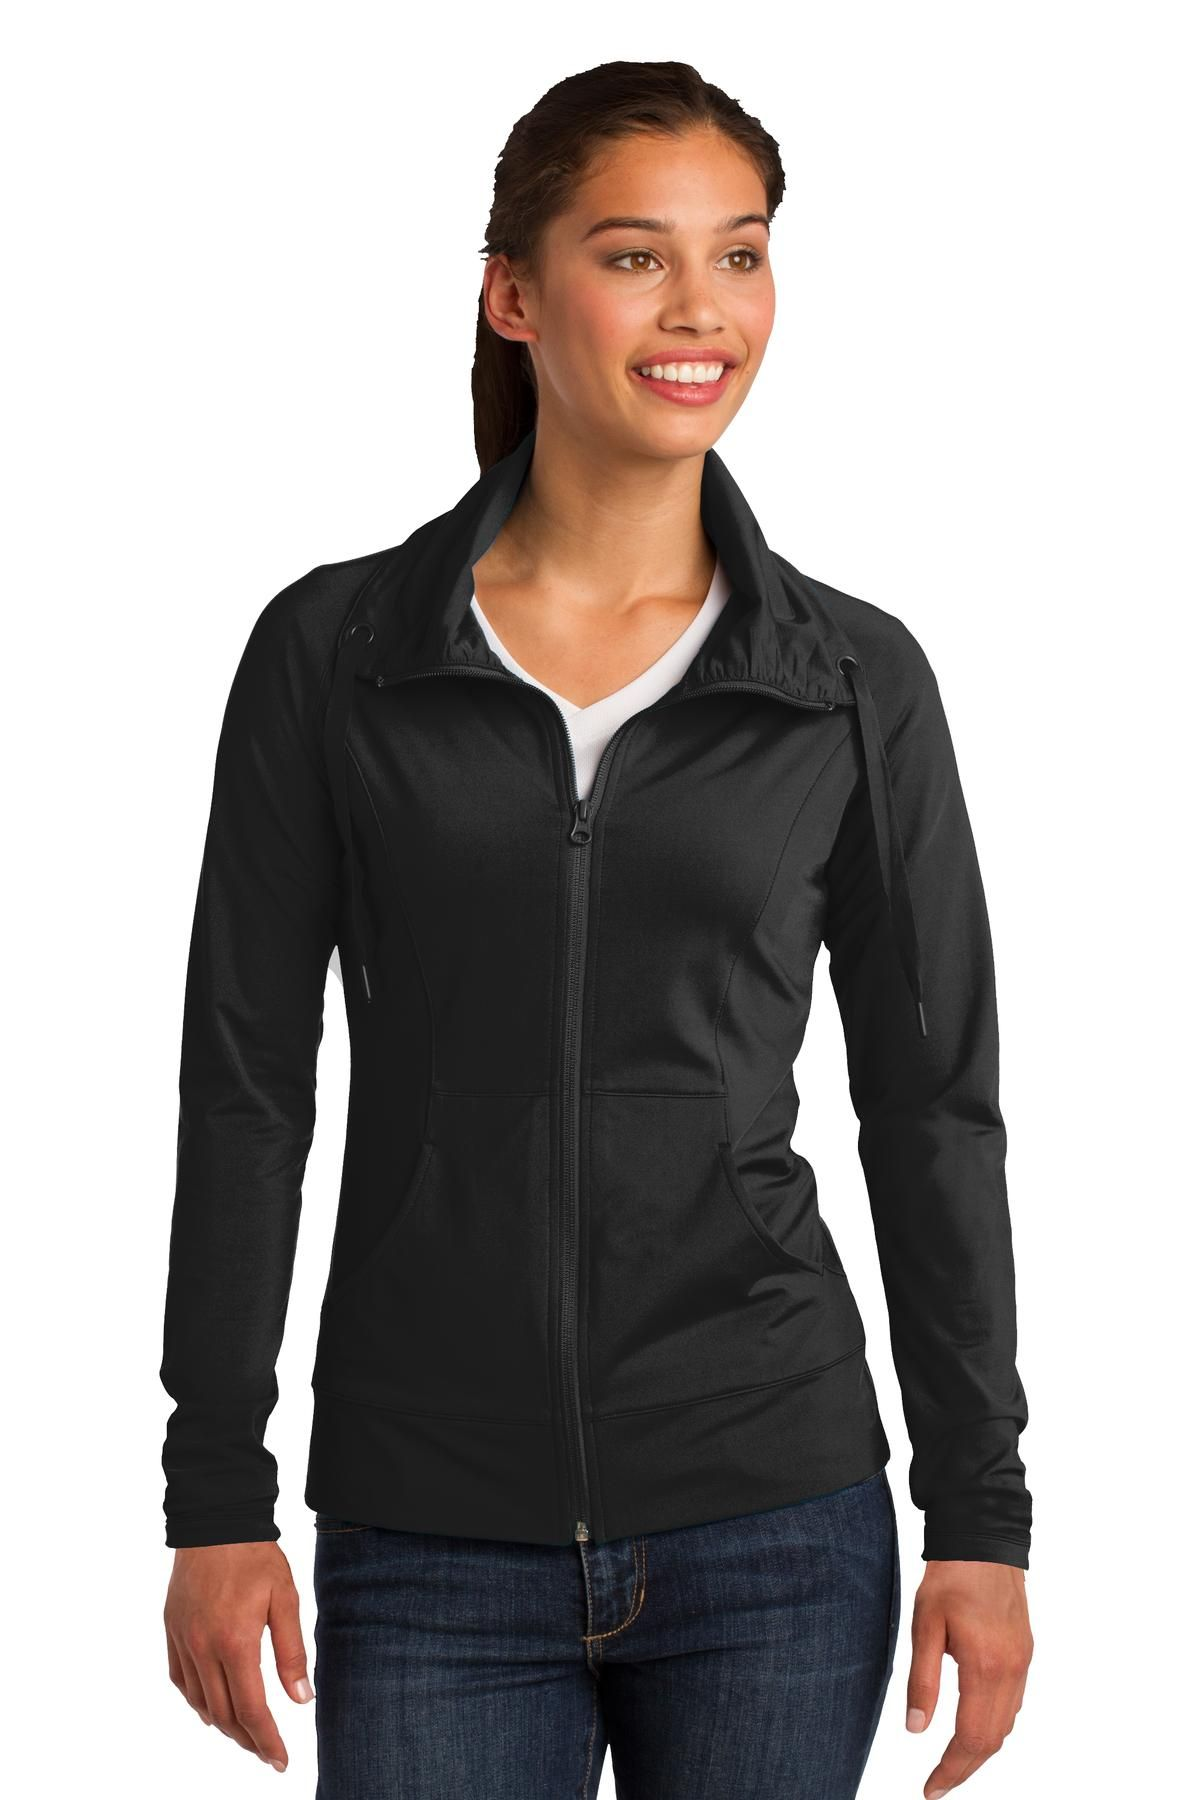 Buffalo Embroidery : Ladies sport wick stretch full zip jacket. Up to 4XL. Minimum order 12 pieces for embroidery. $35 includes embroidery.